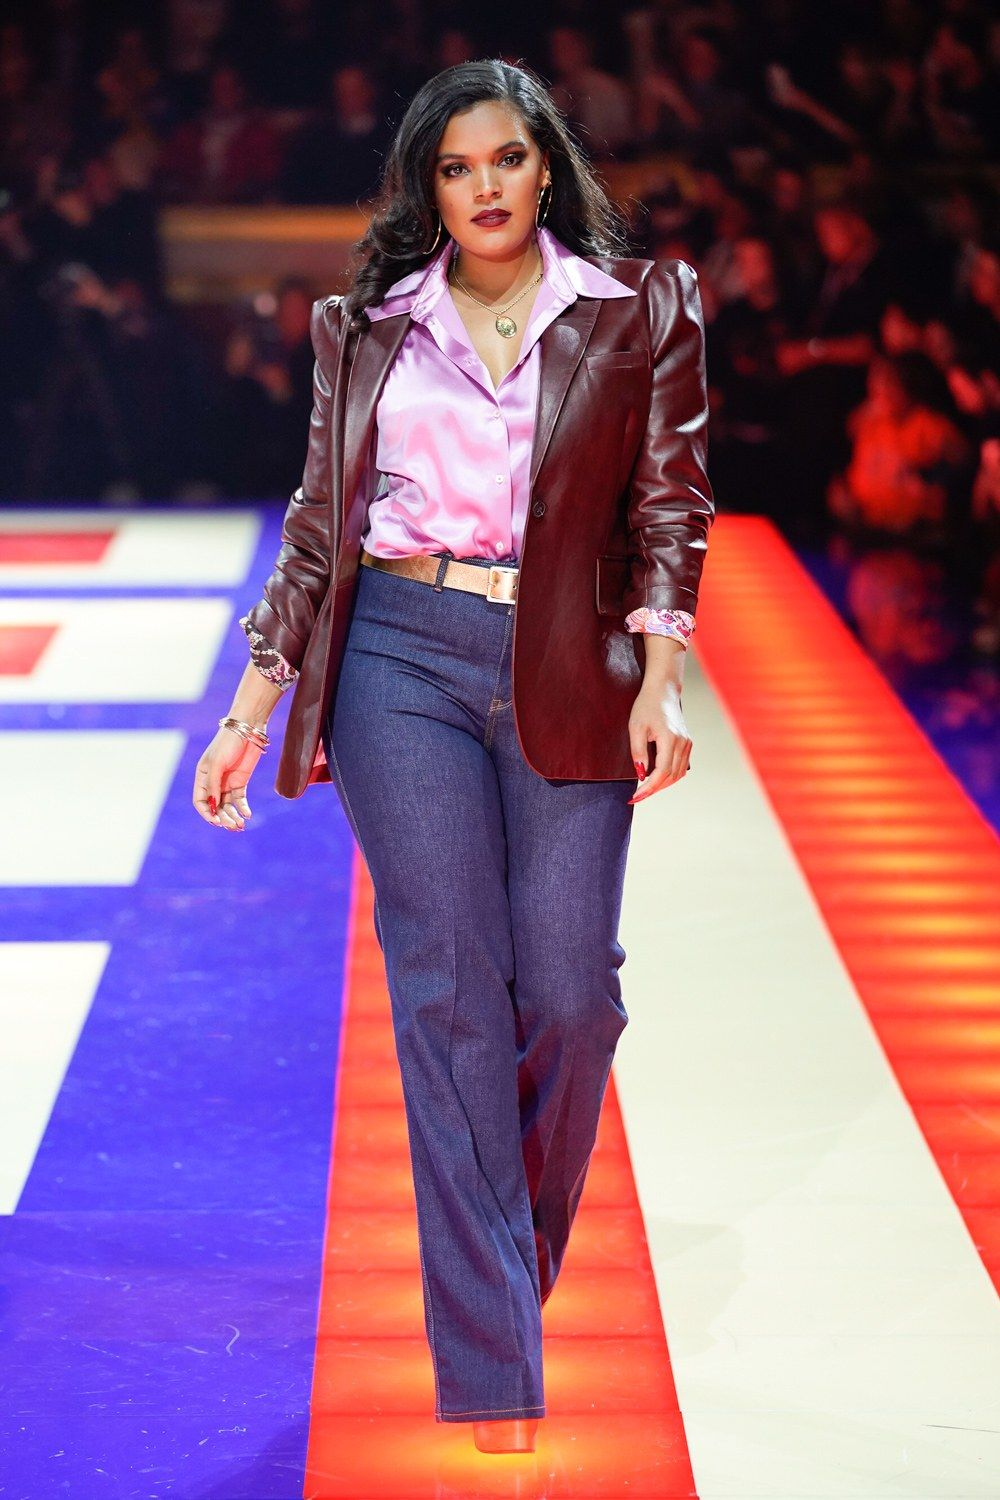 Tommy Hilfiger Spring 2019 Ready to Wear Fashion Show in